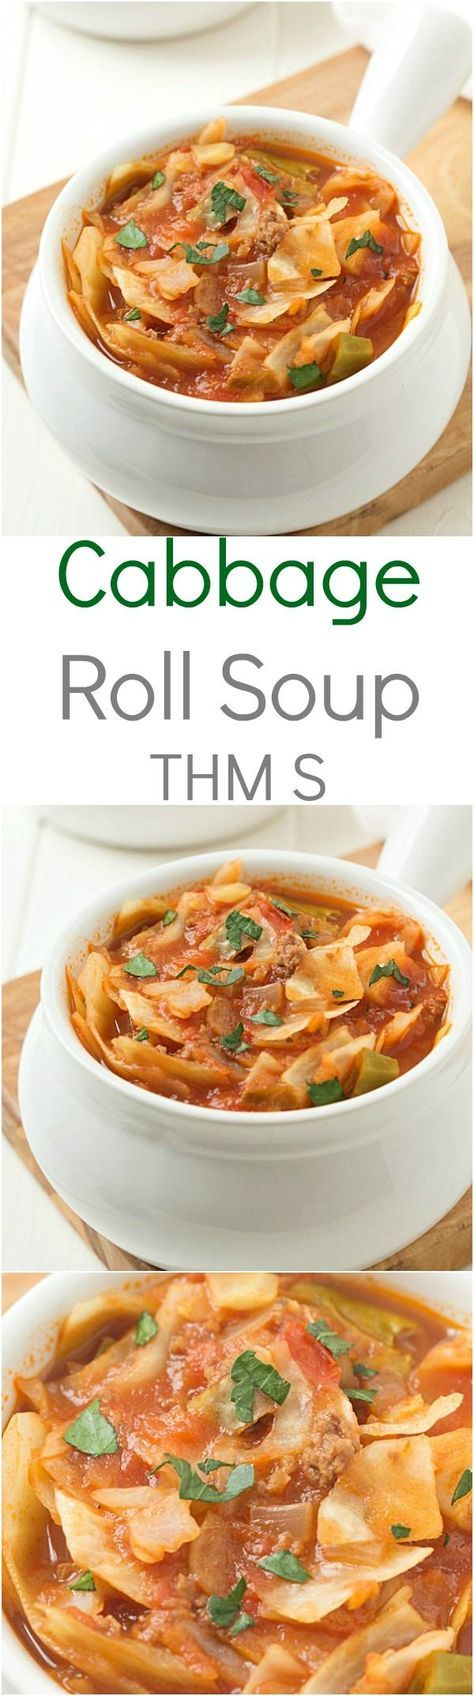 Unstuffed Cabbage Roll Soup: Incredibly easy and the flavor is out-of-this-world! A winter staple soup! Trim Healthy Mama Diet (S) Meal.: